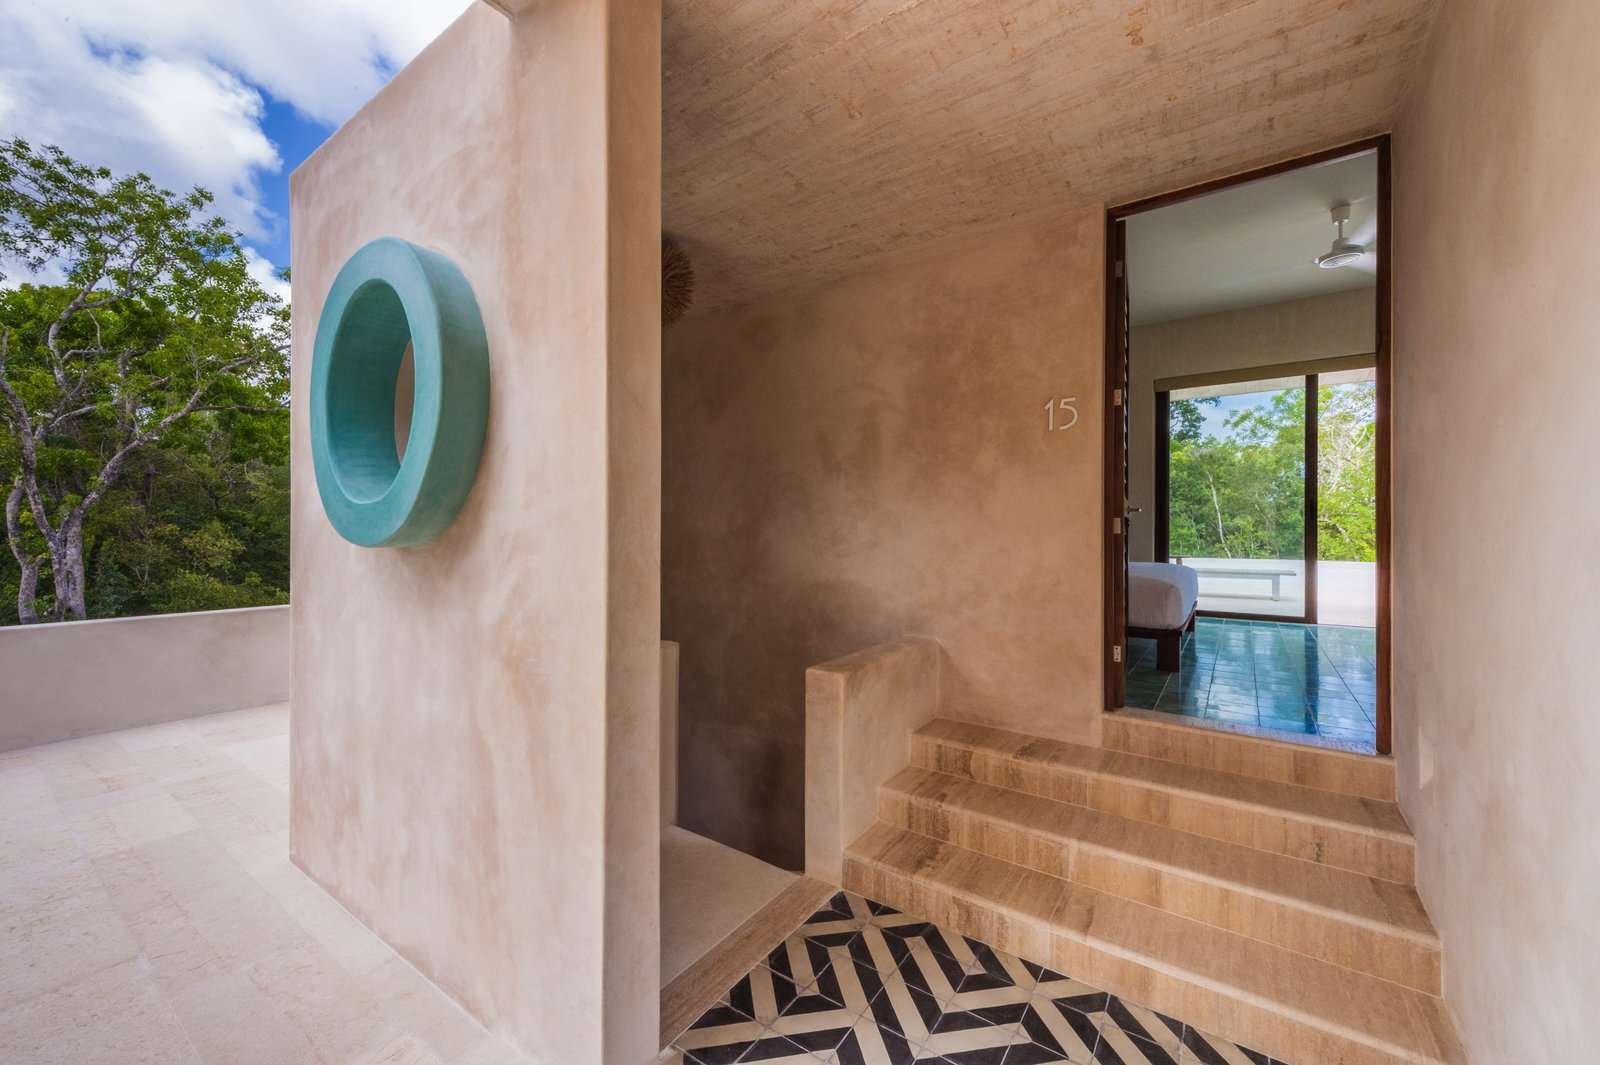 Photo 8 of 9 in A New Modern Hotel Brings Midcentury Miami to Tulum, Mexico